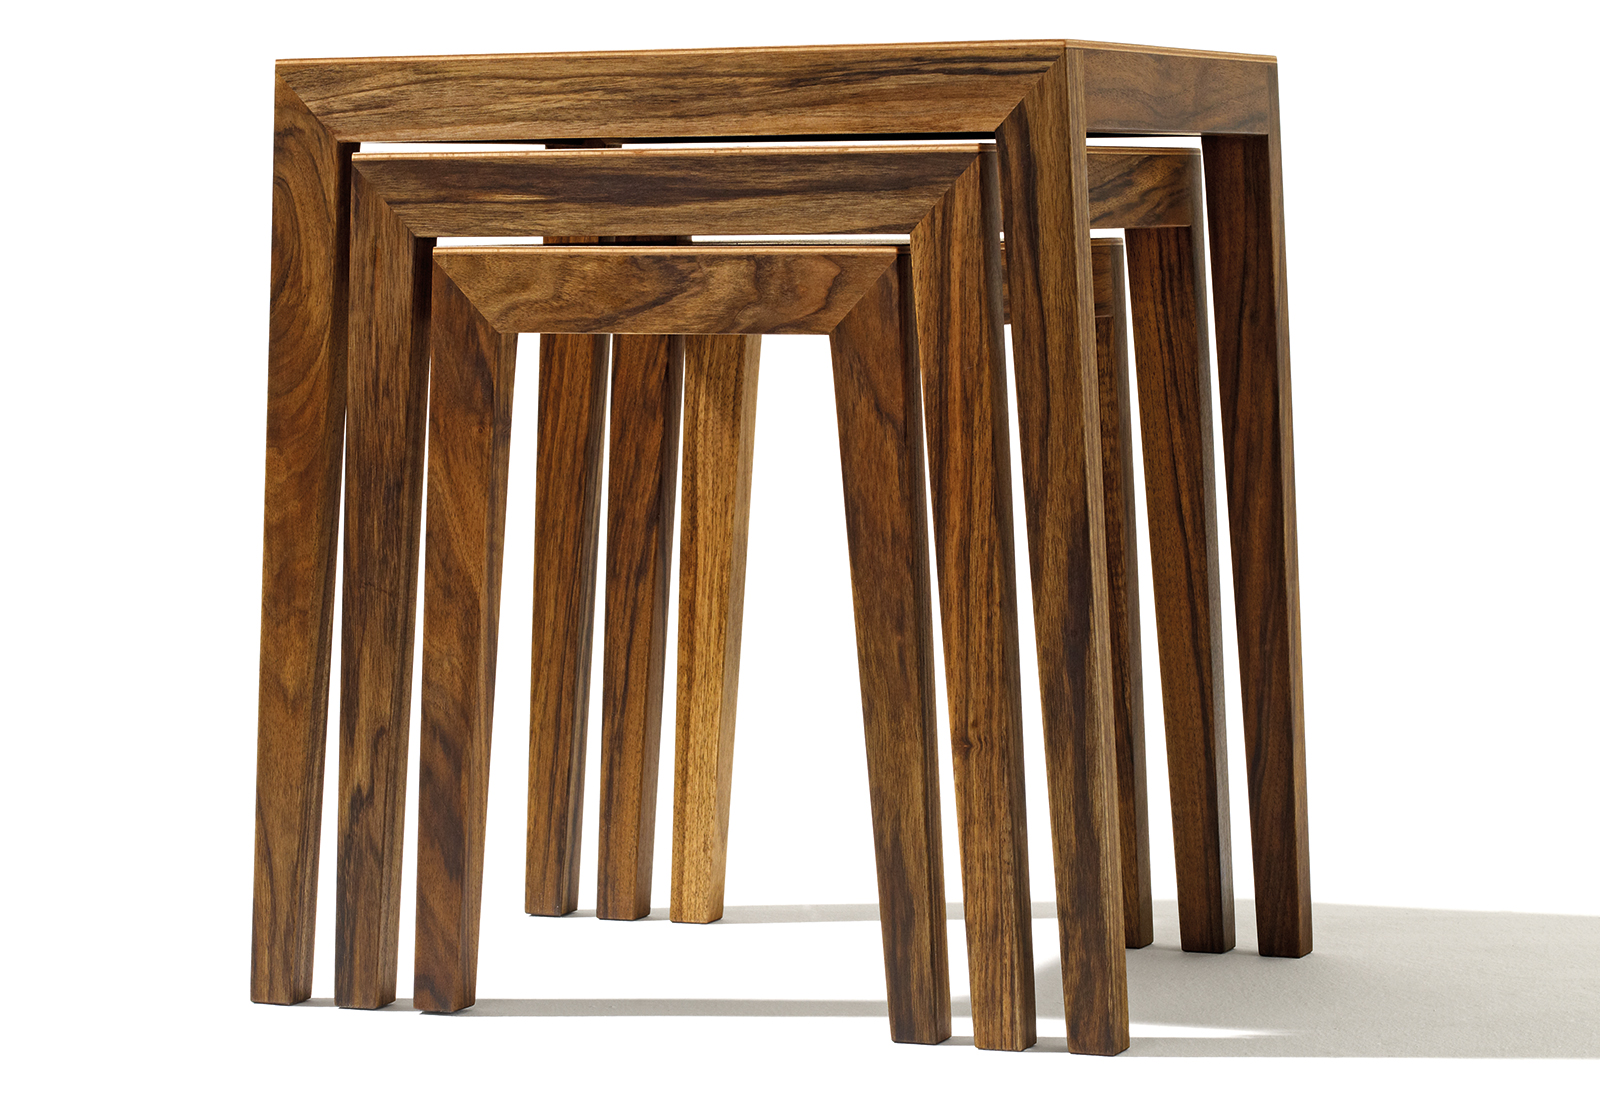 THEO nest of tables